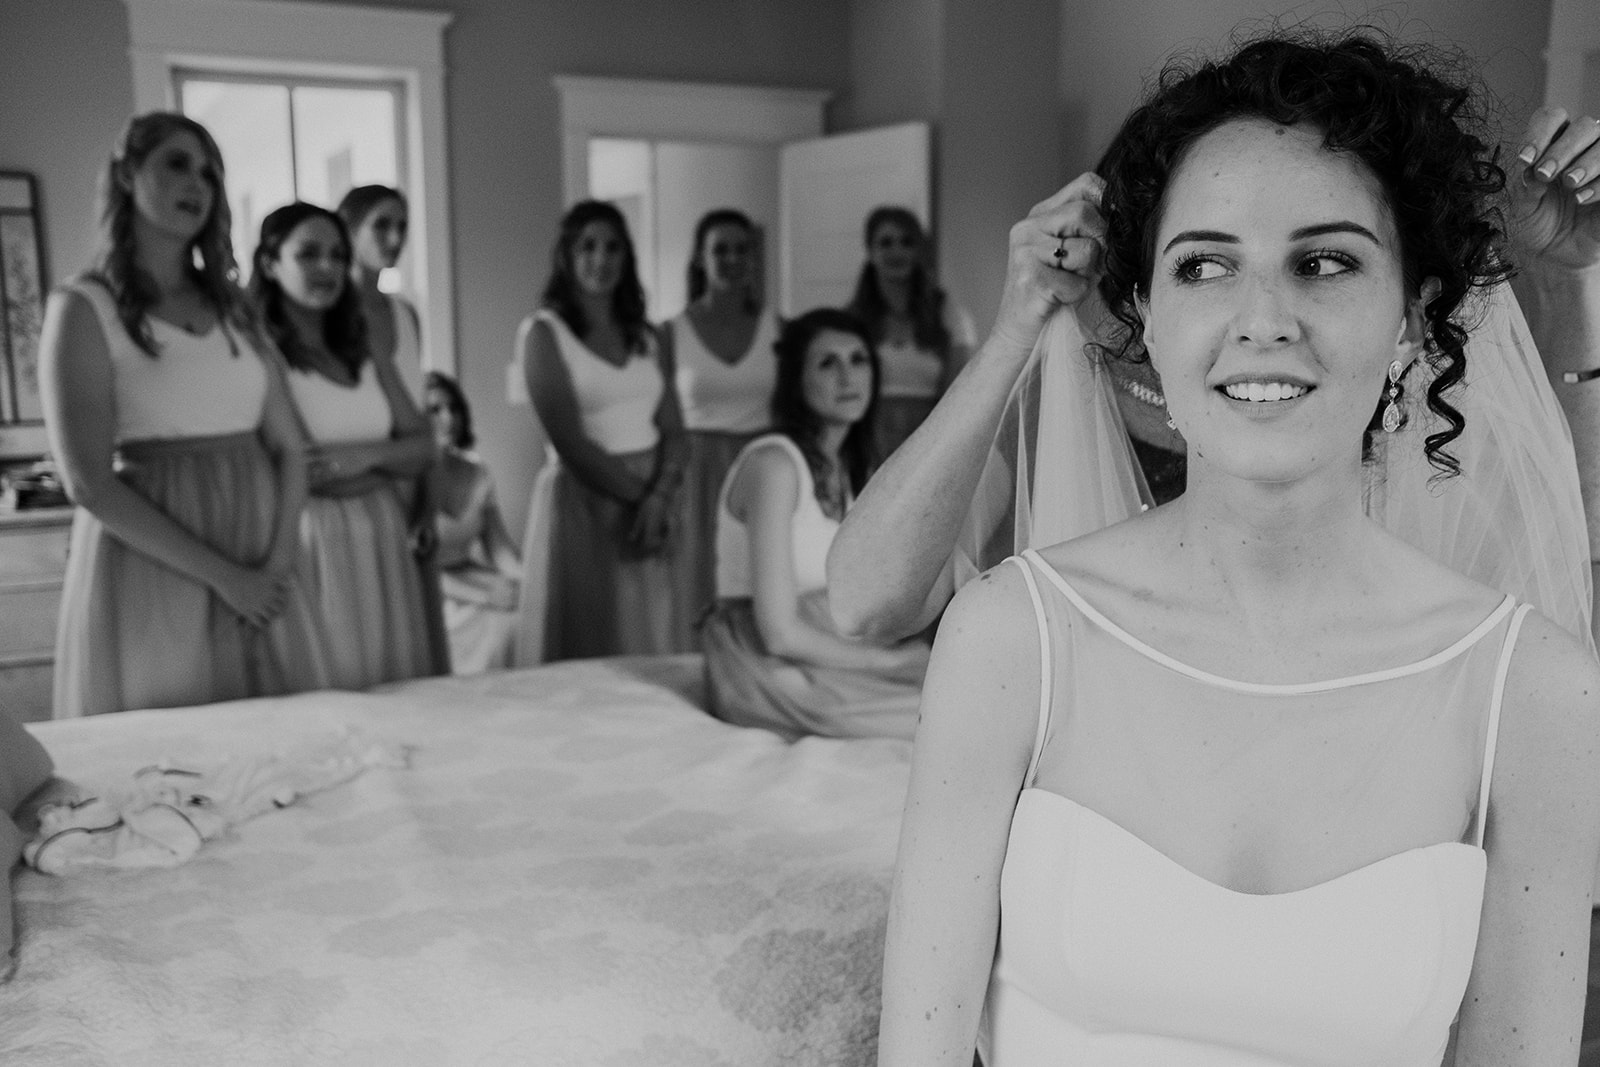 Bridesmaids look on while a bride gets her veil put in place before her outdoor wedding ceremony at Blue Hill Farm in Waterford, VA.